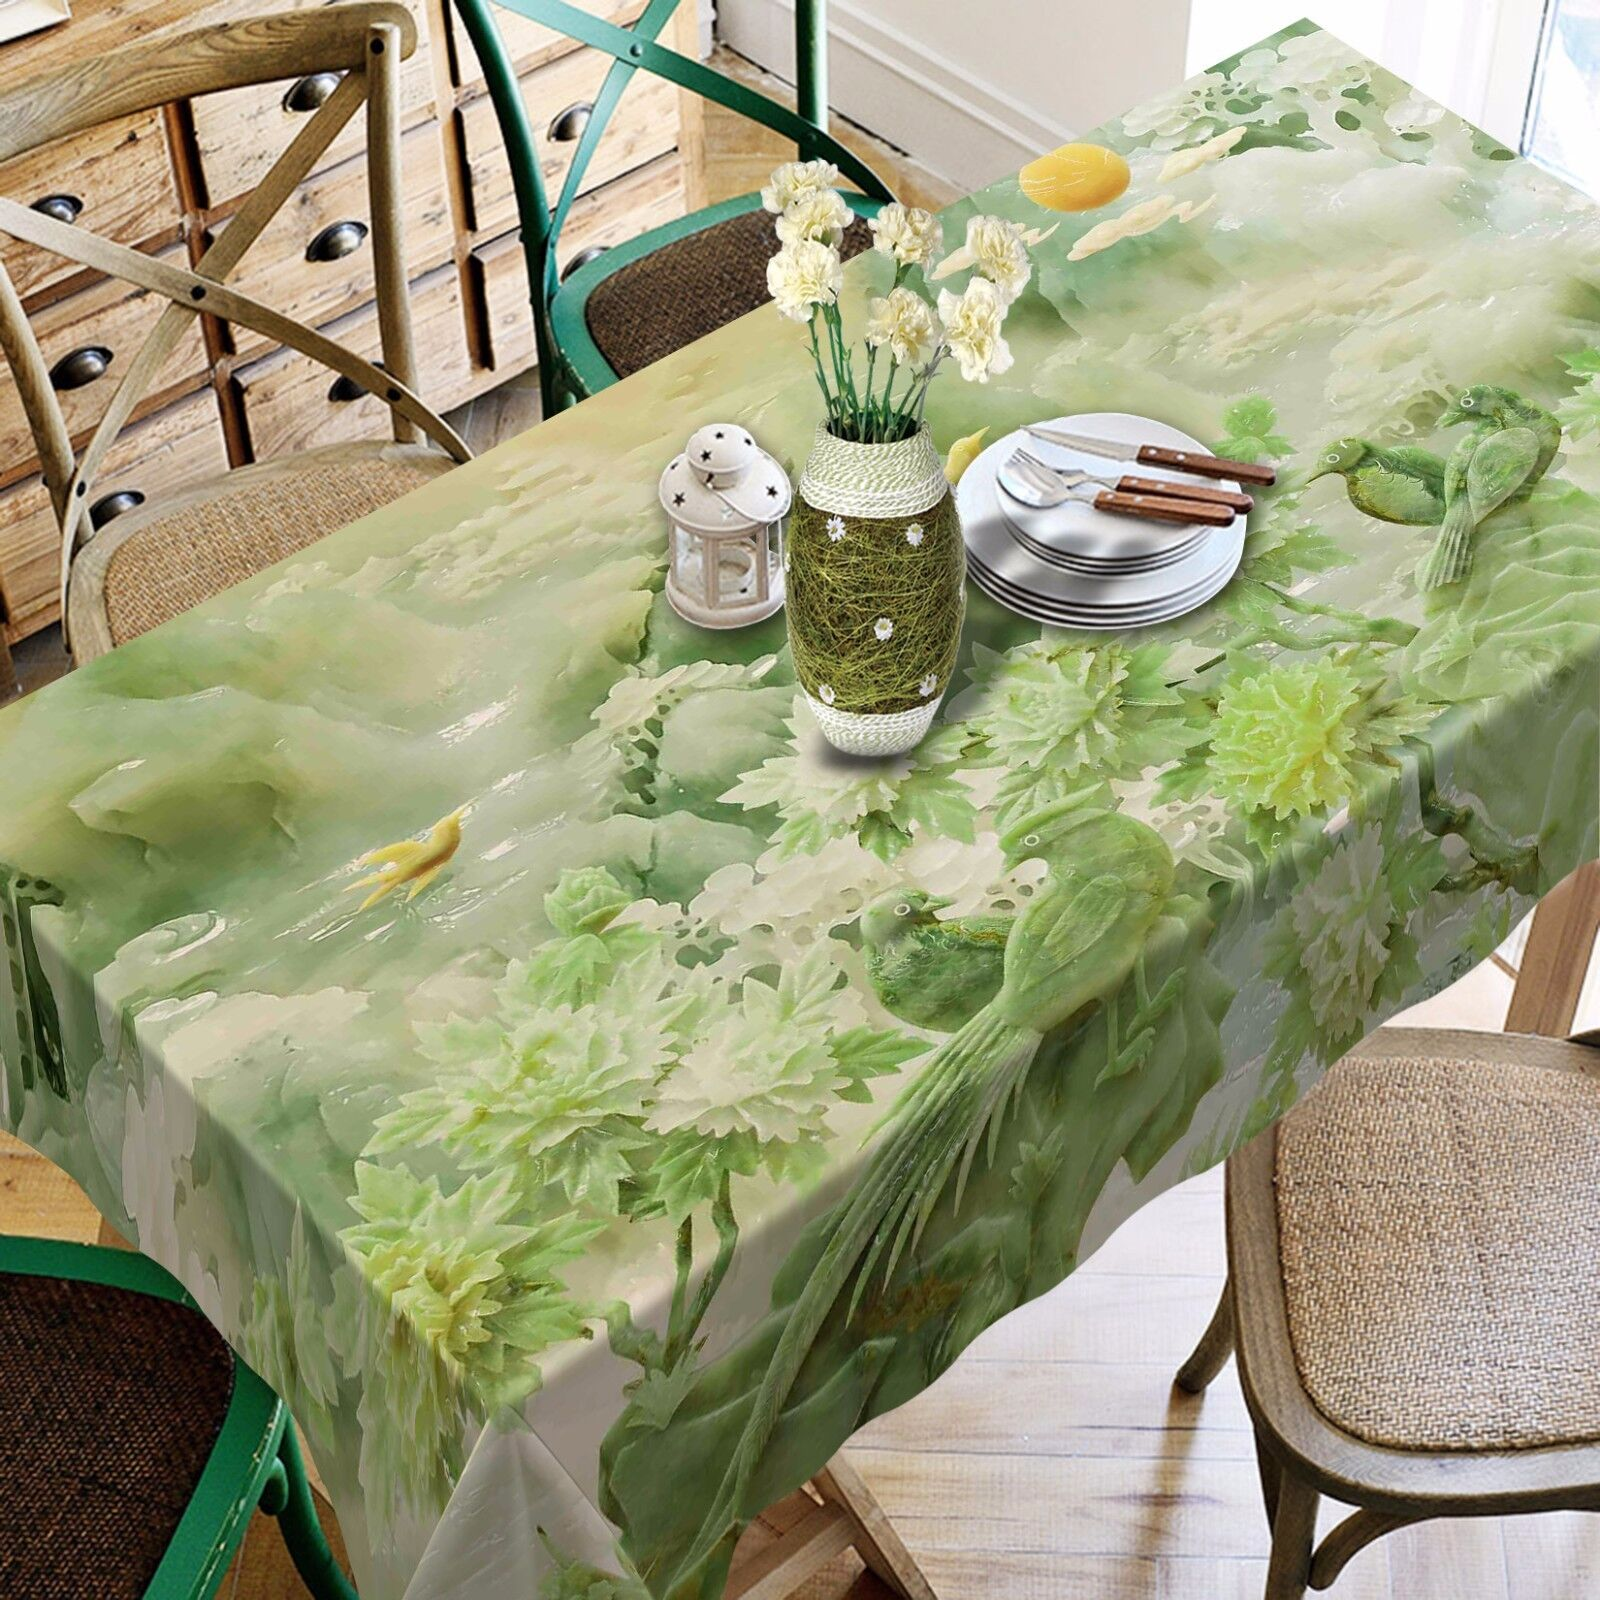 3D Grün hill8 Tablecloth Table Cover Cloth Birthday Party Event AJ WALLPAPER UK